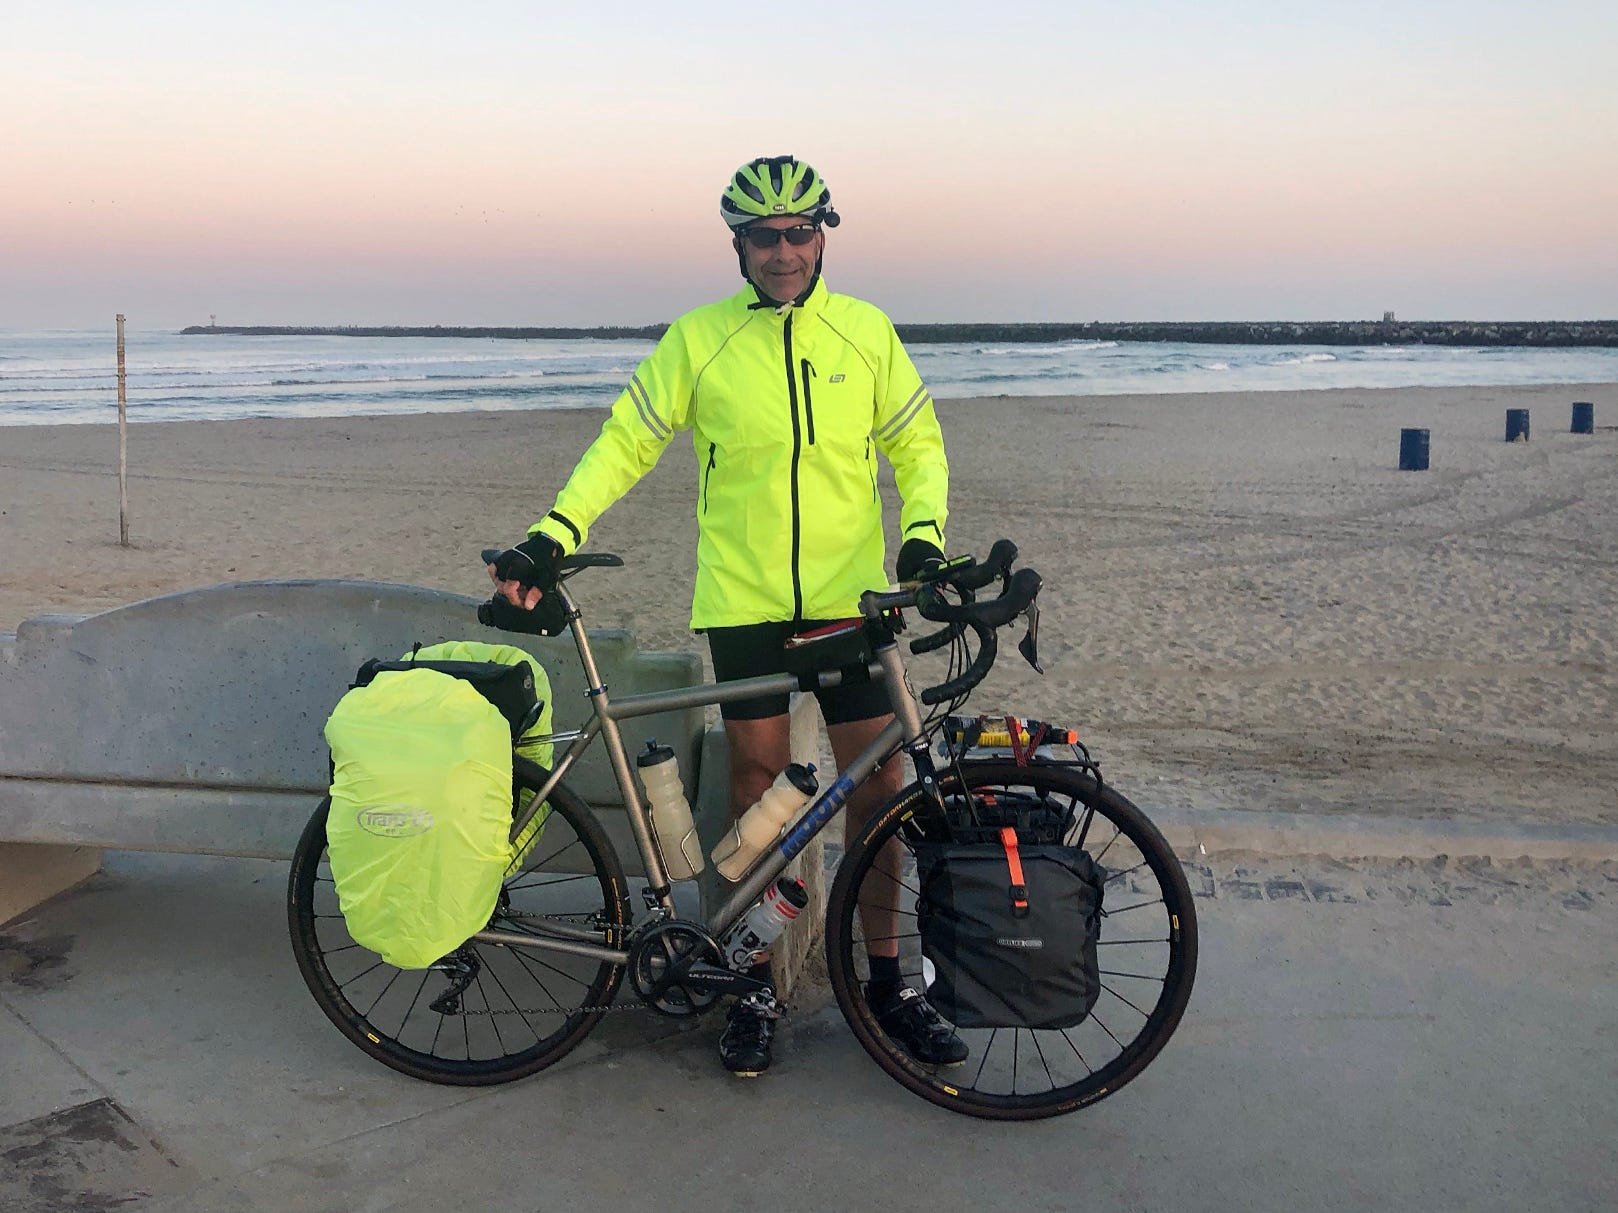 Dave Watkins leaves from San Diego, California, on March 31, 2019. He's biking to raise money for ovarian cancer research, after losing his wife and three other family members to the disease.